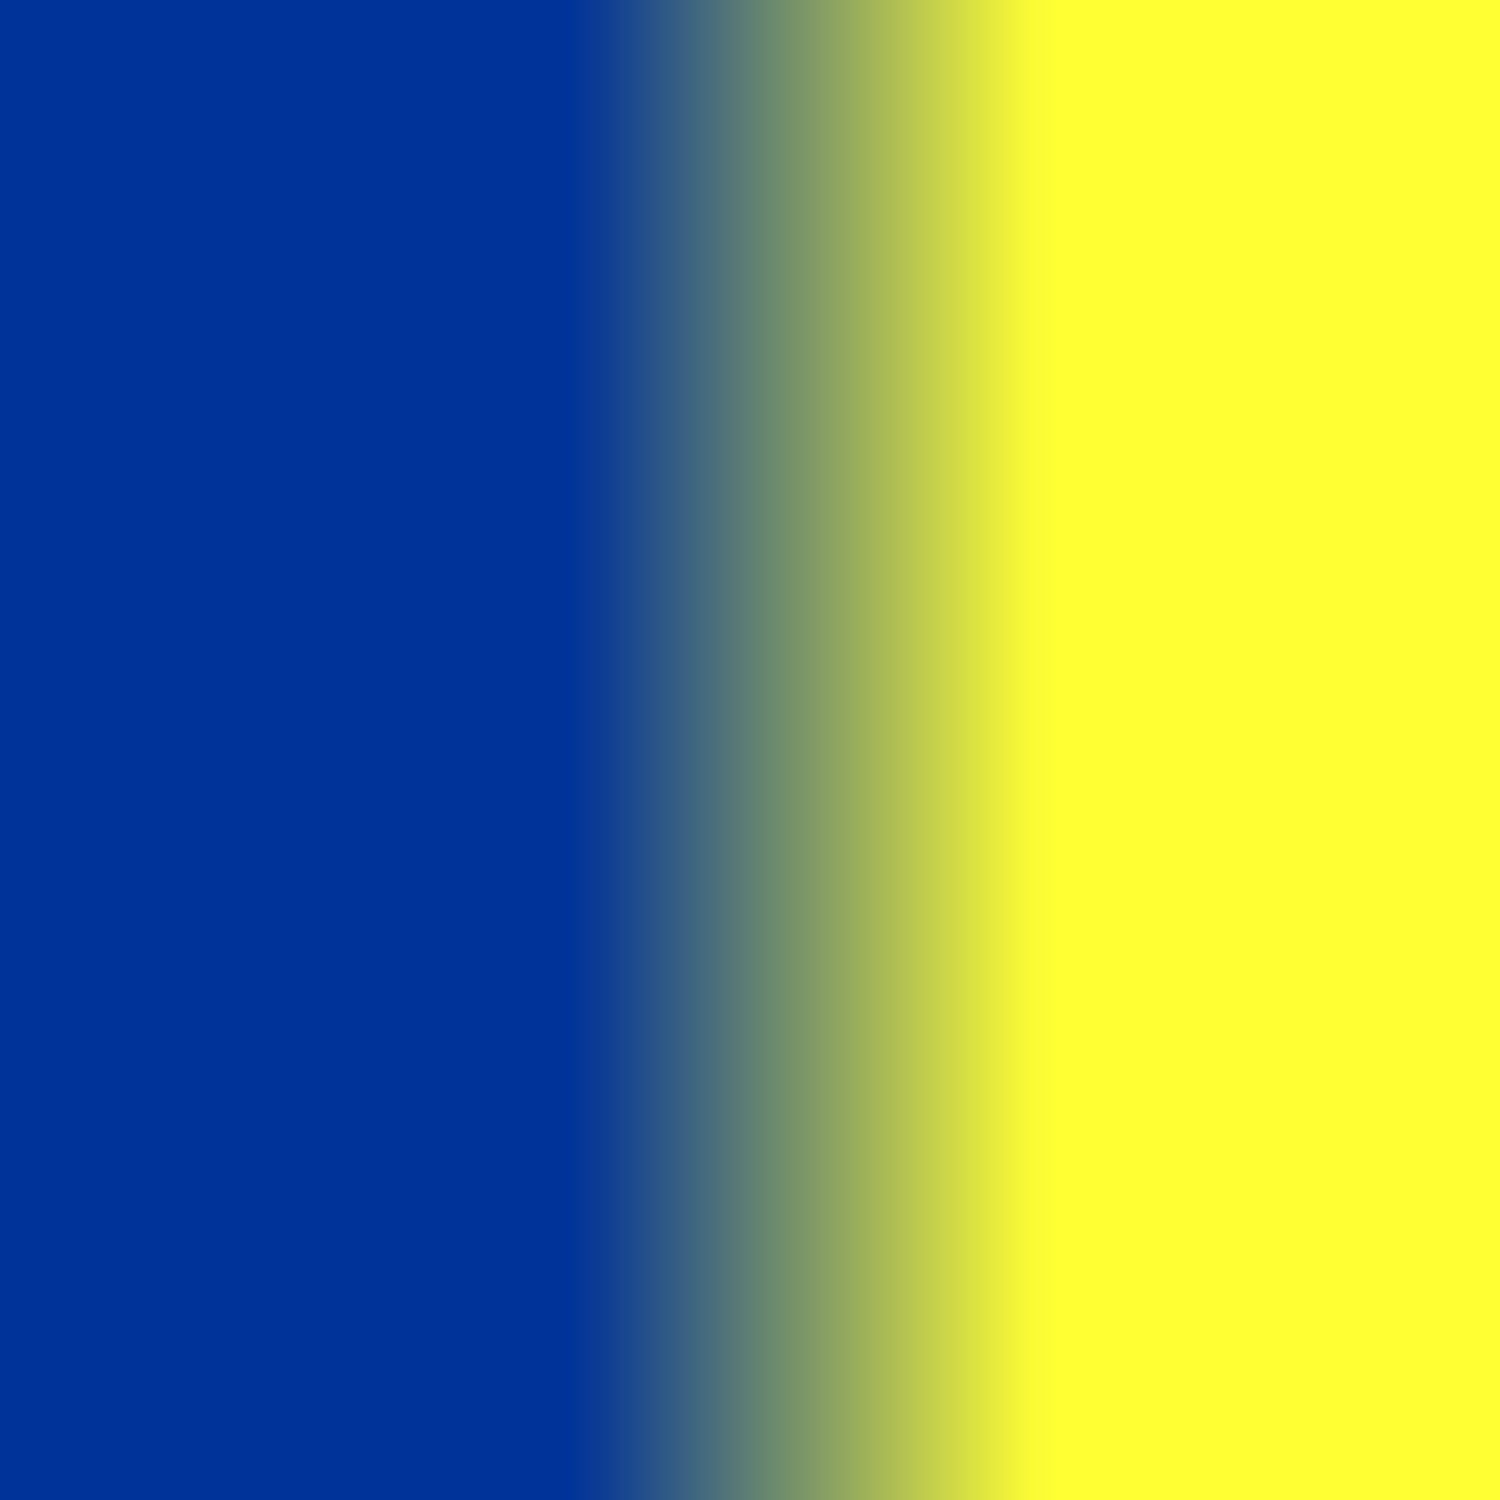 how to make blue color from yellow